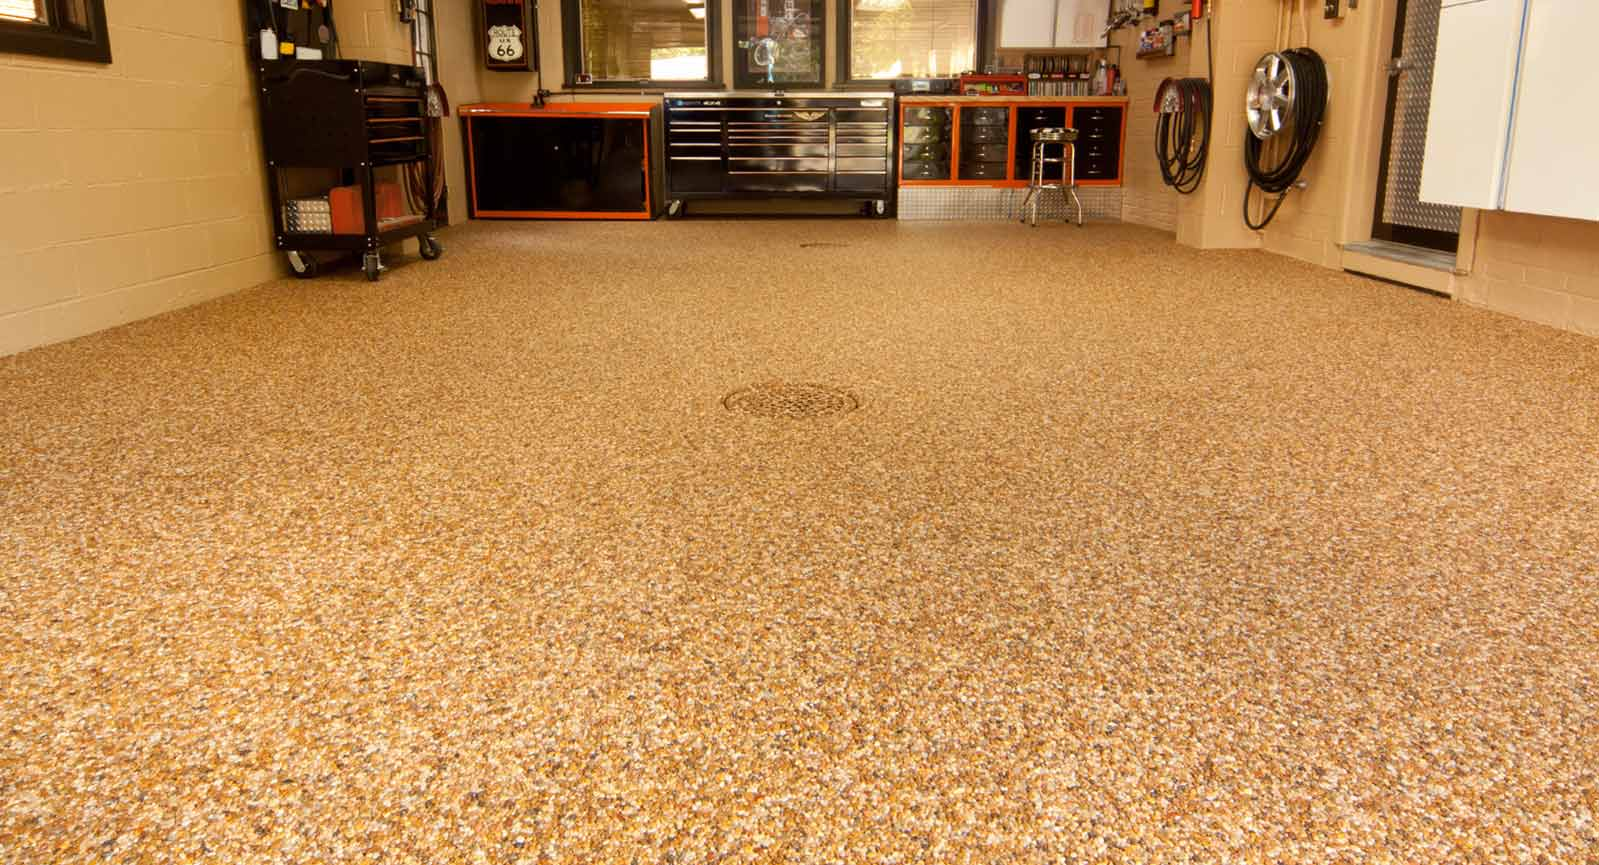 Bring Basement Floor Covering More Vivid Homesfeed